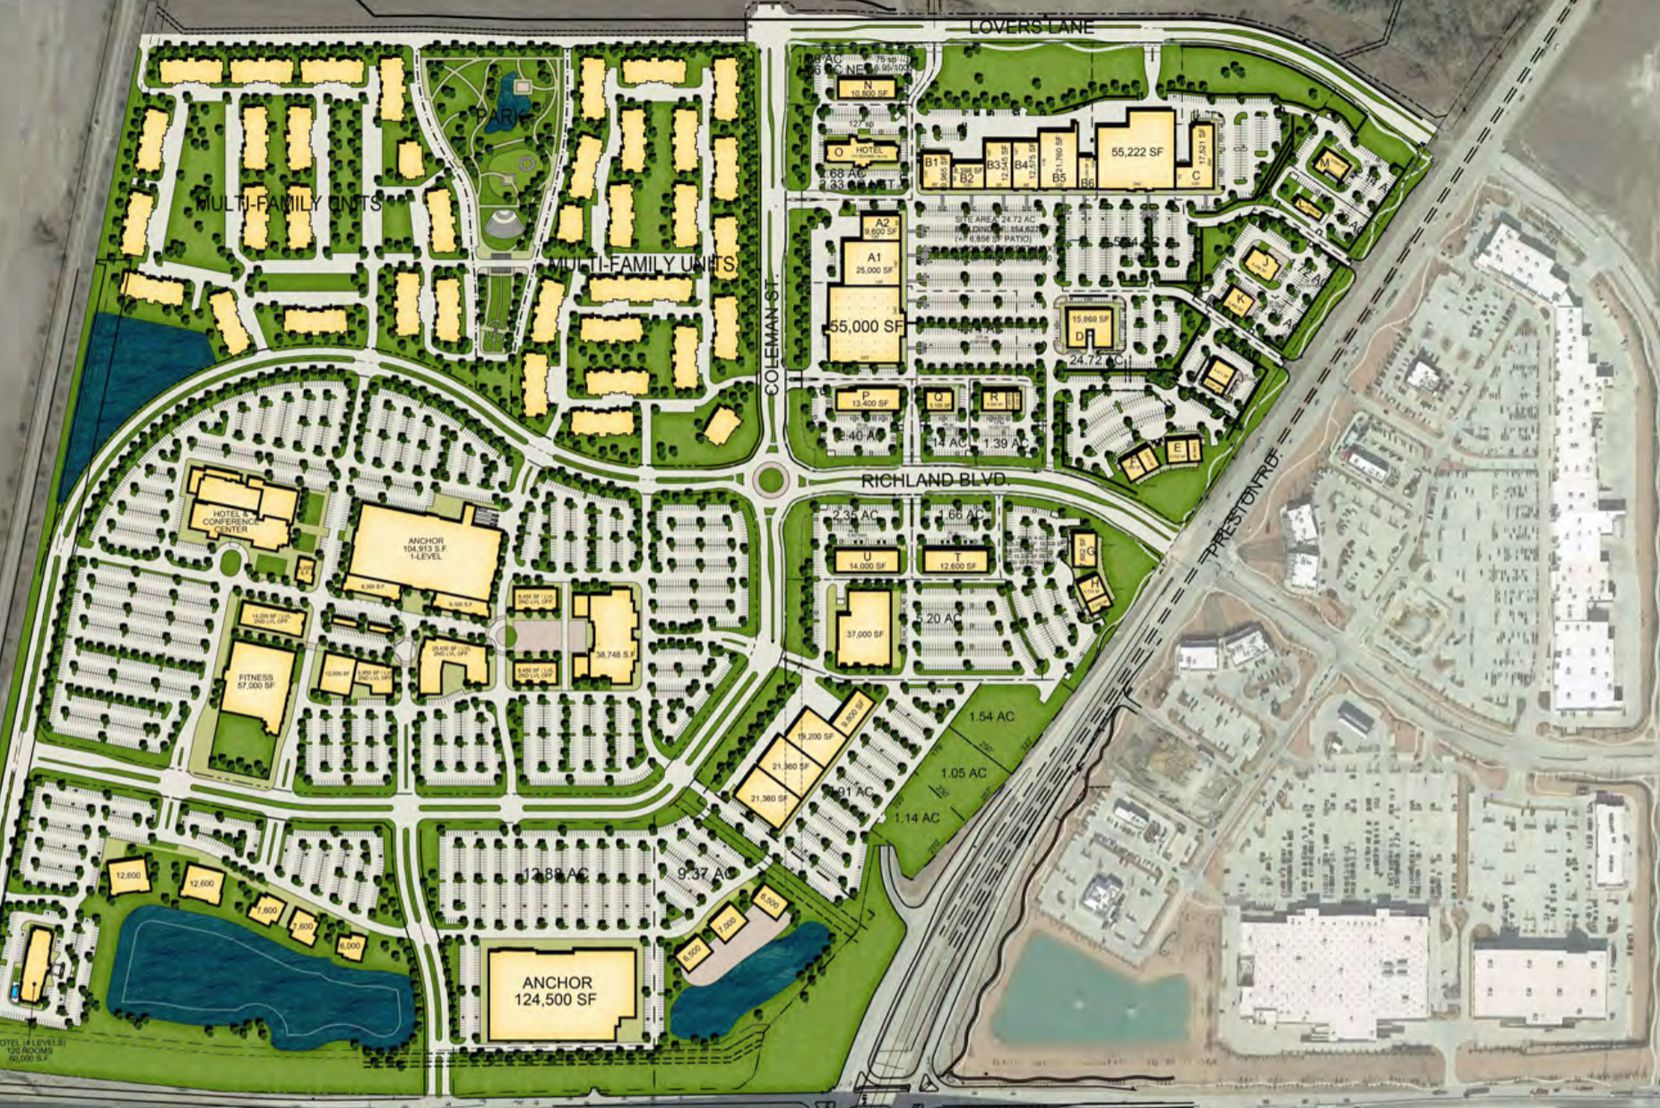 The Gates of Prosper apartment project is planned at the northwest corner of Coleman Street and Richland Boulevard, west of Preston Road.